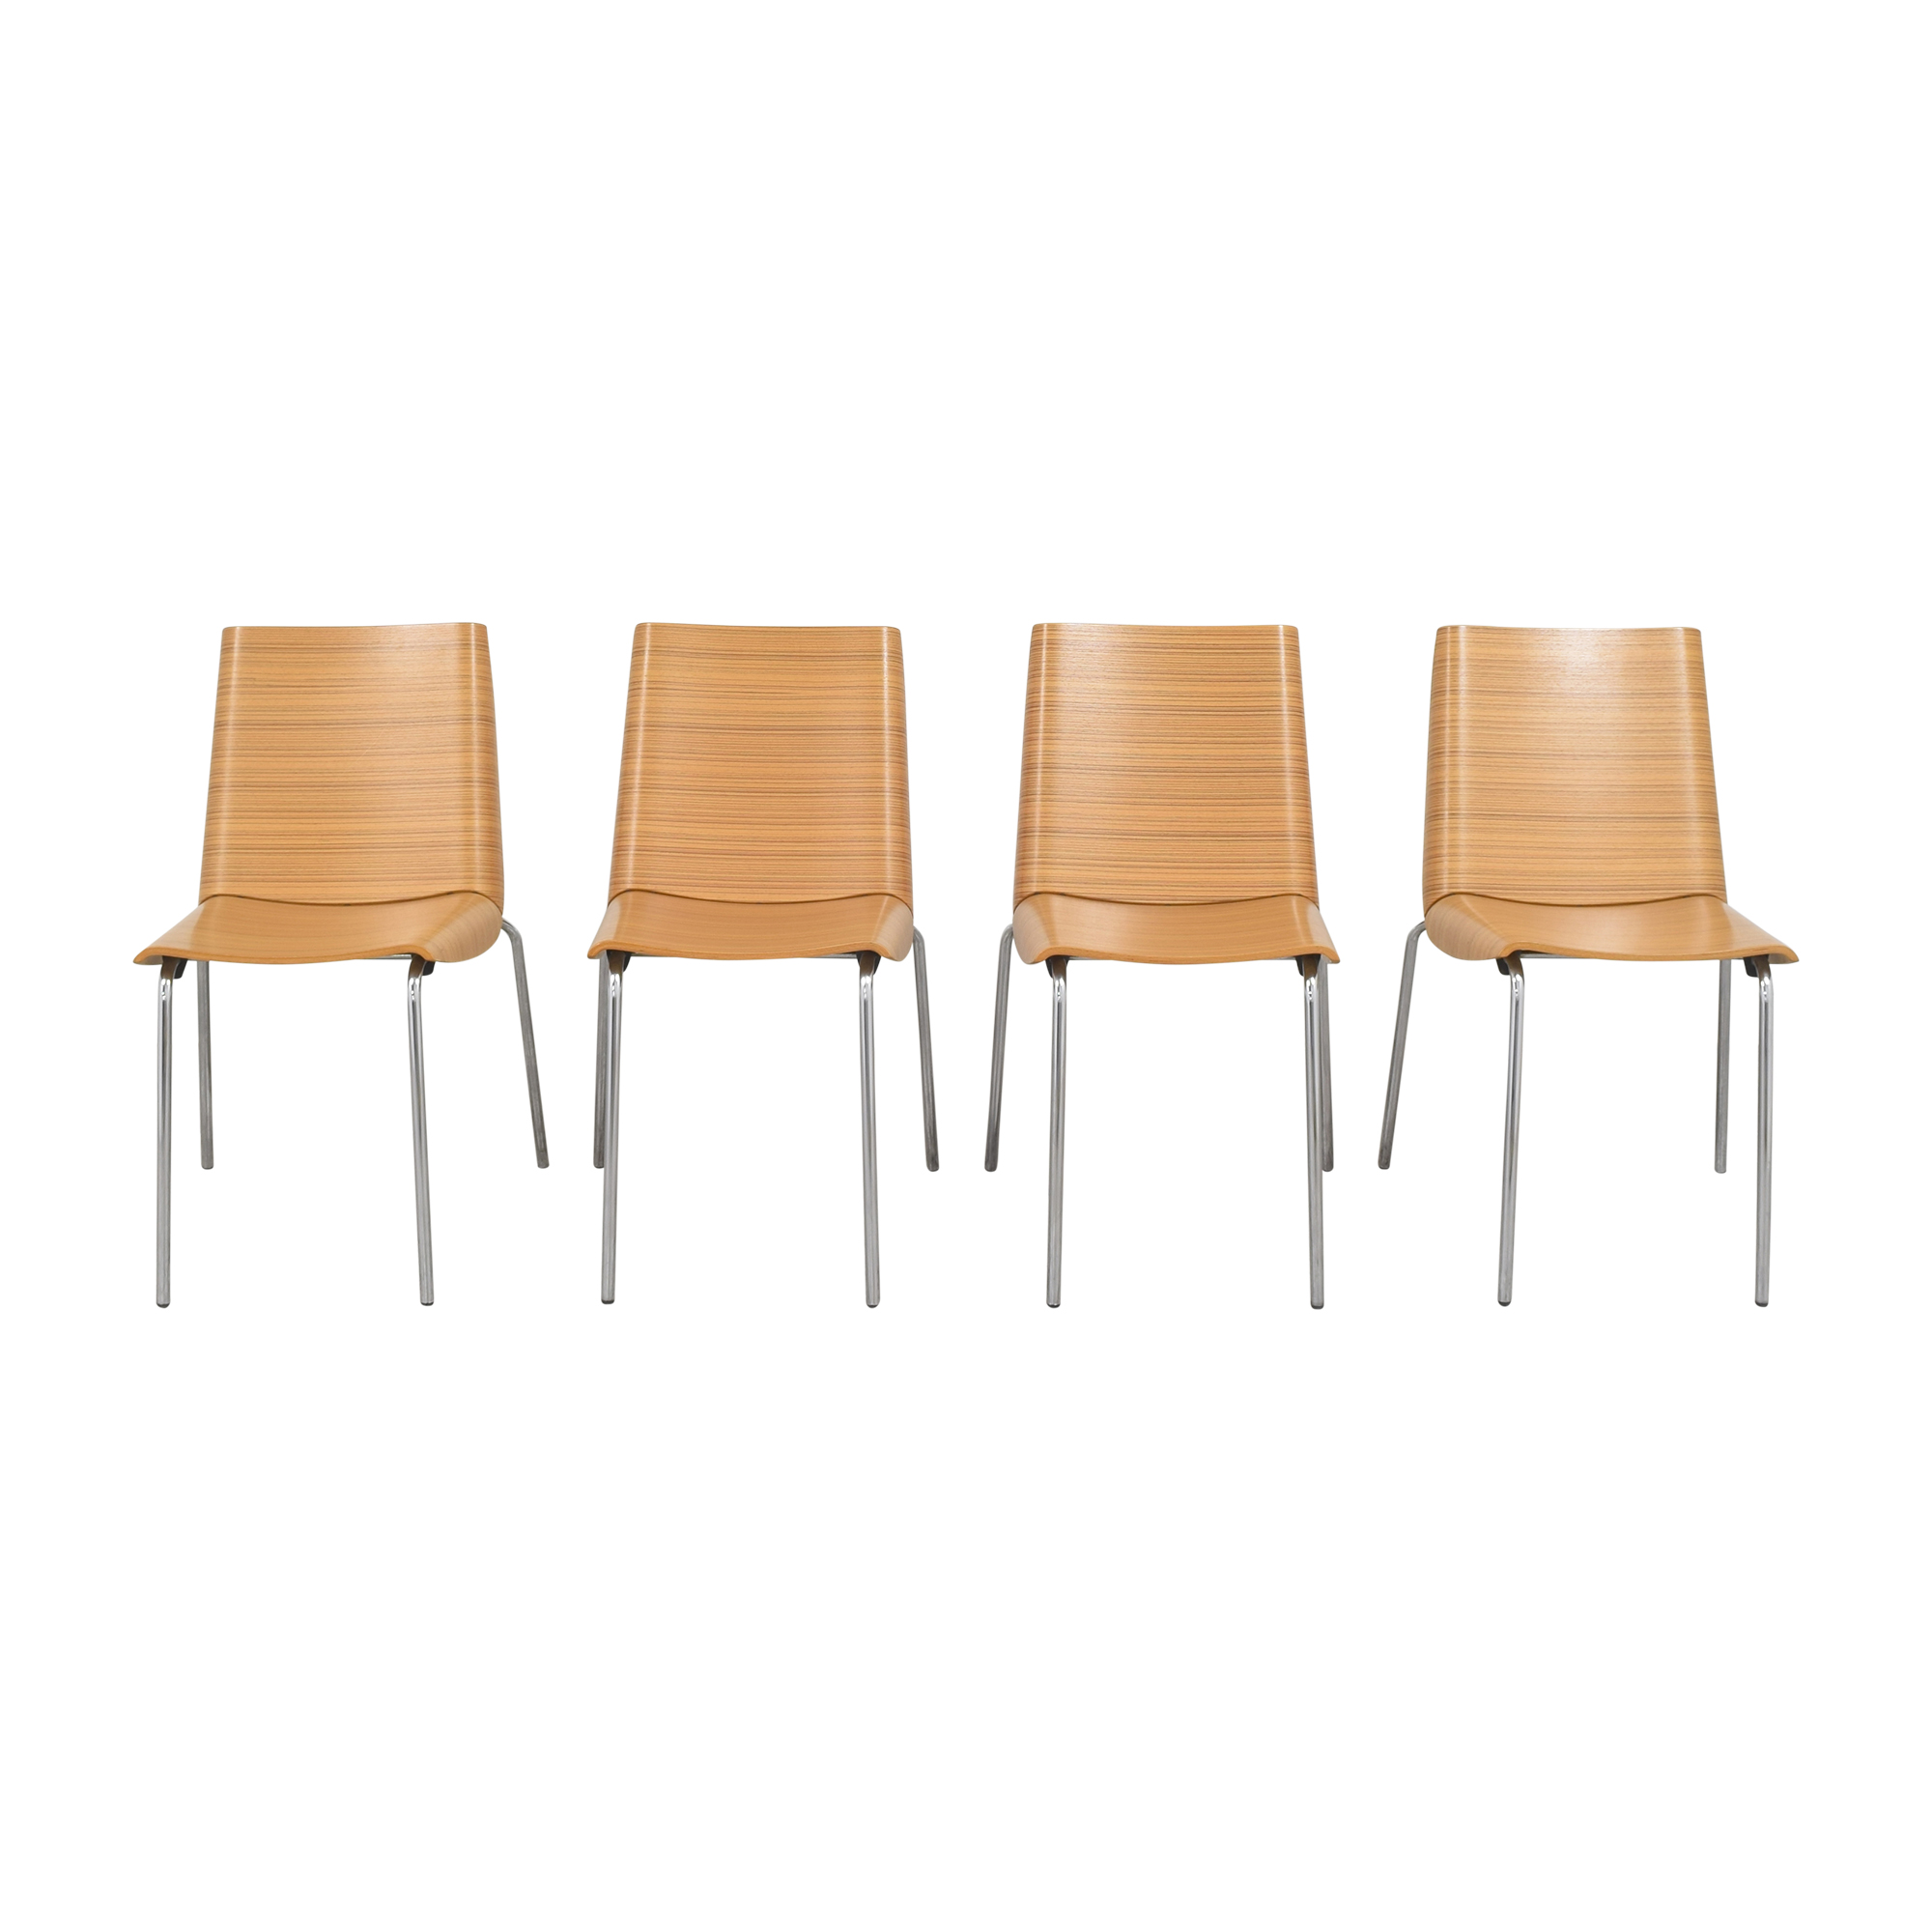 shop Plank Millefoglie Dining Side Chairs Plank